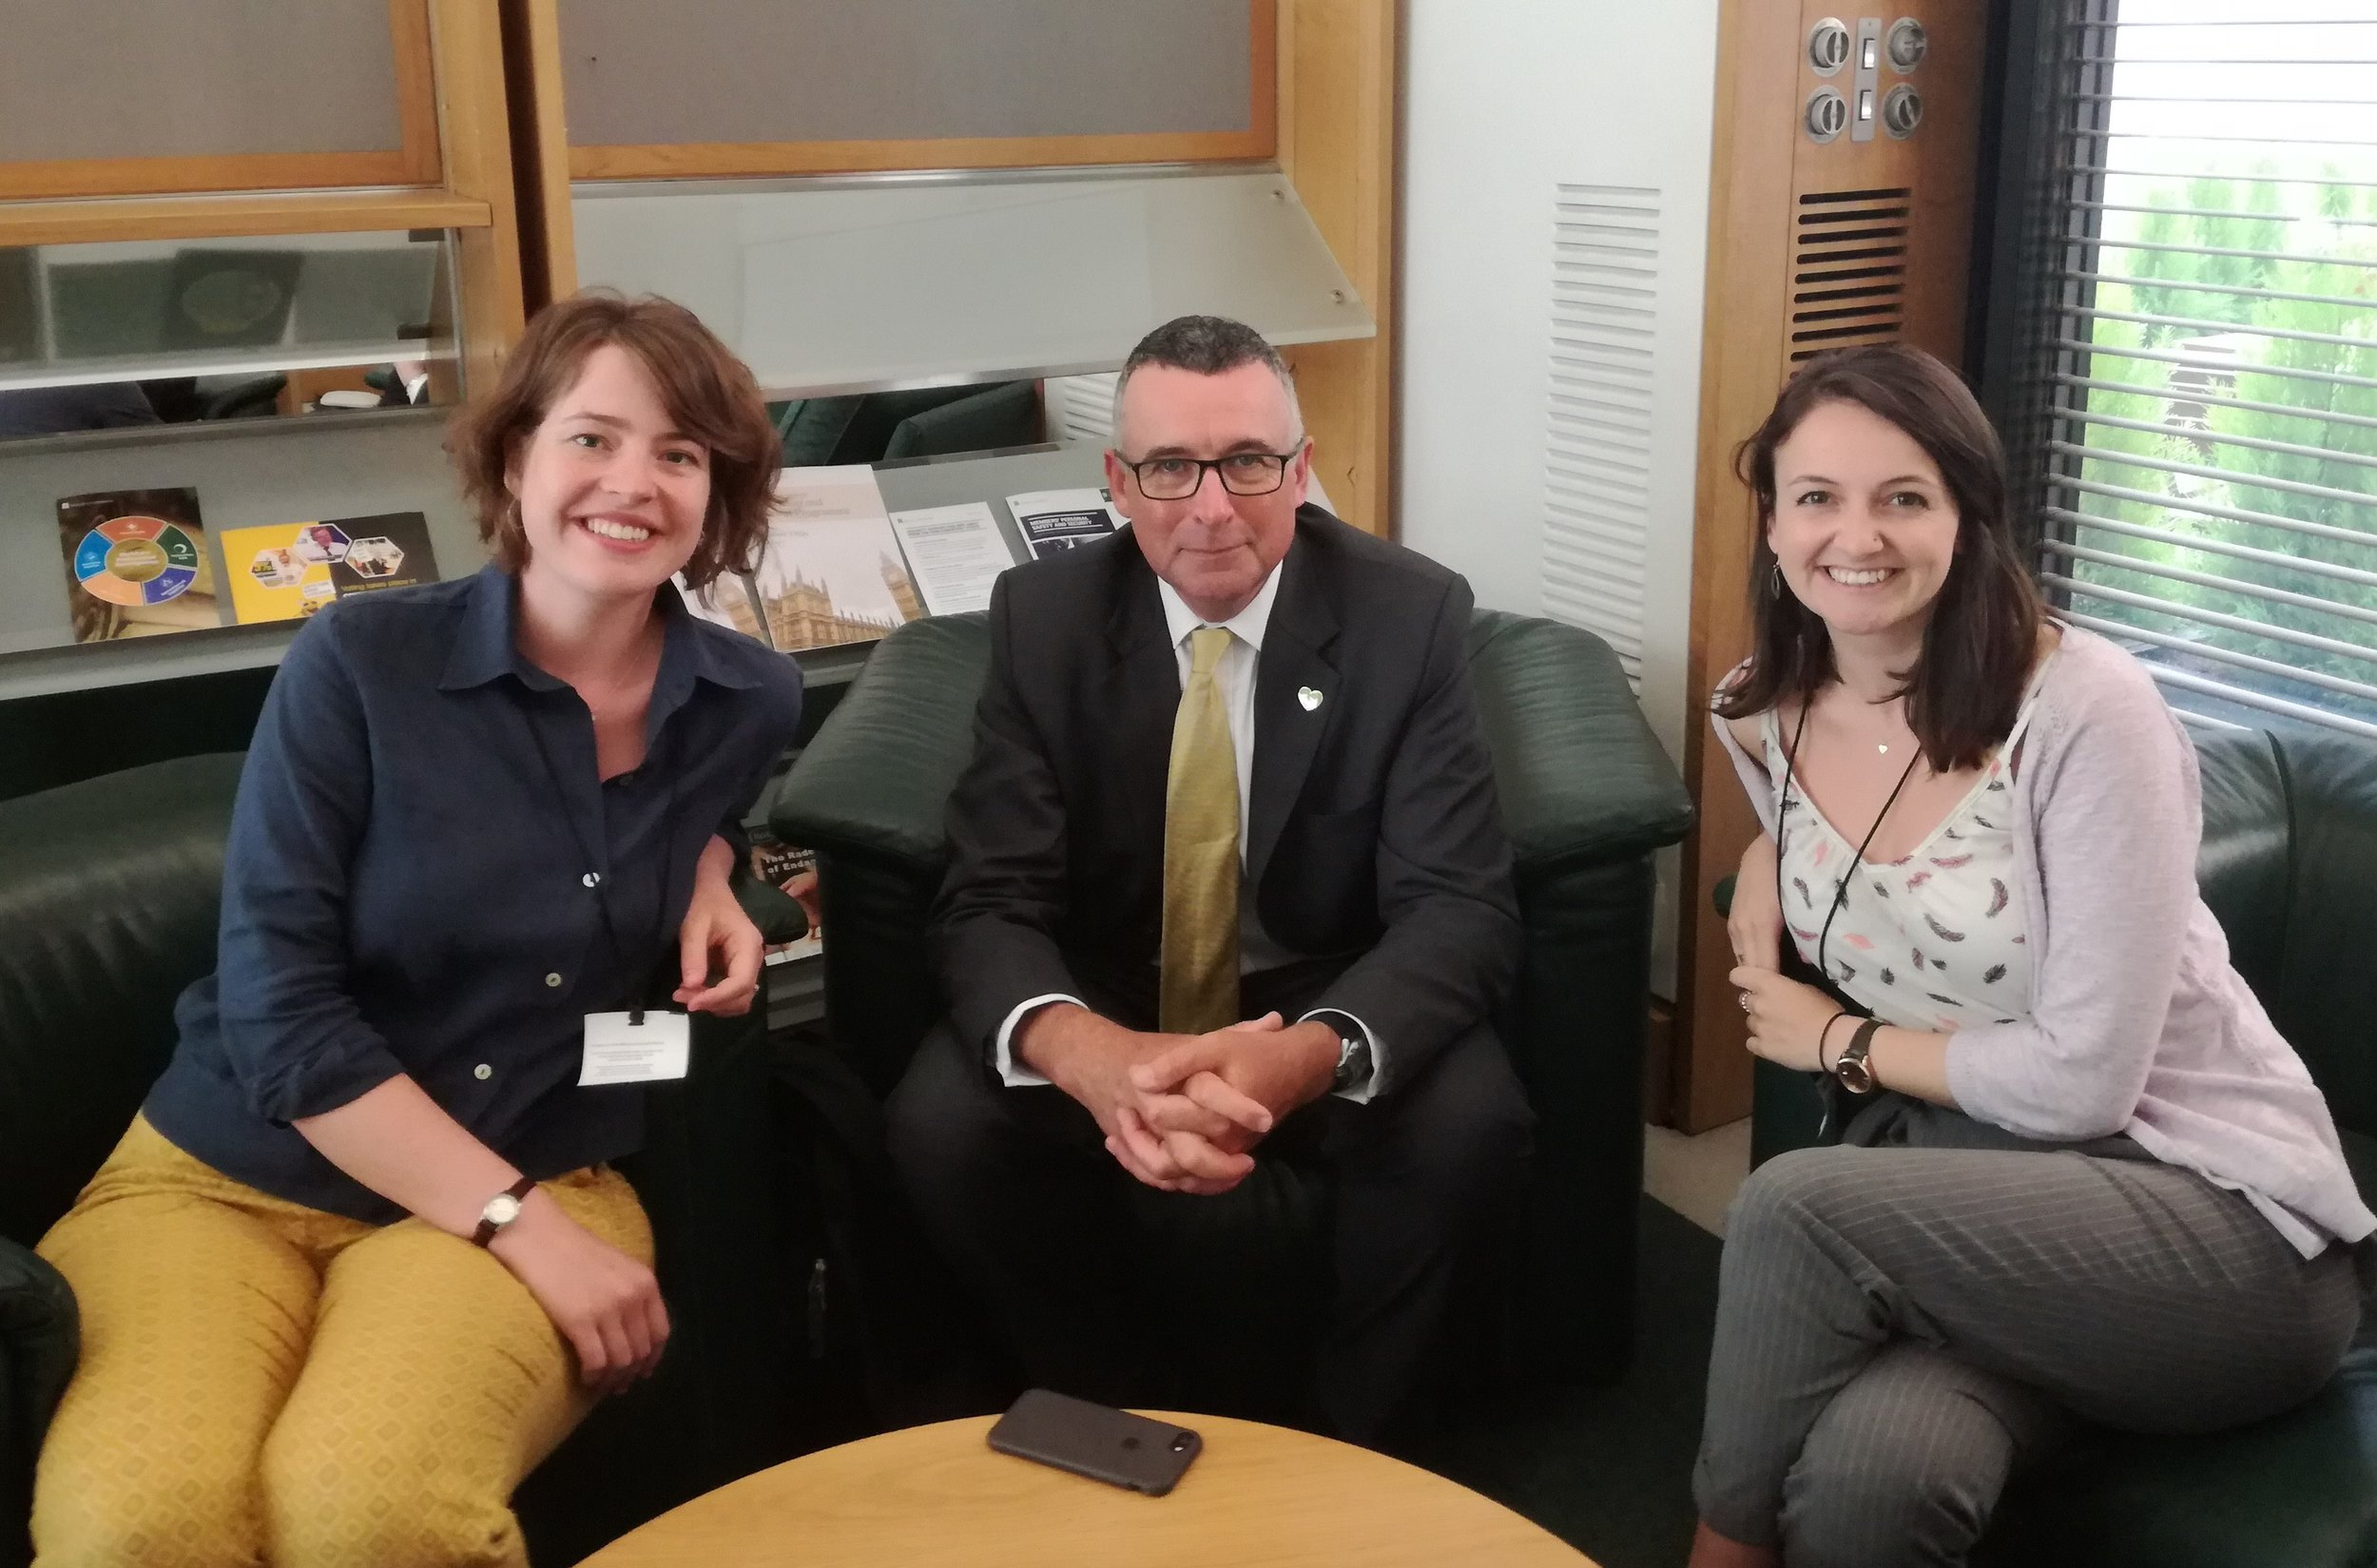 Hftf Director, Jo (left) and Assistant Director, Sarah (right) meet with Bernard Jenkin MP to hear about his advice on lobbying and campaigns.